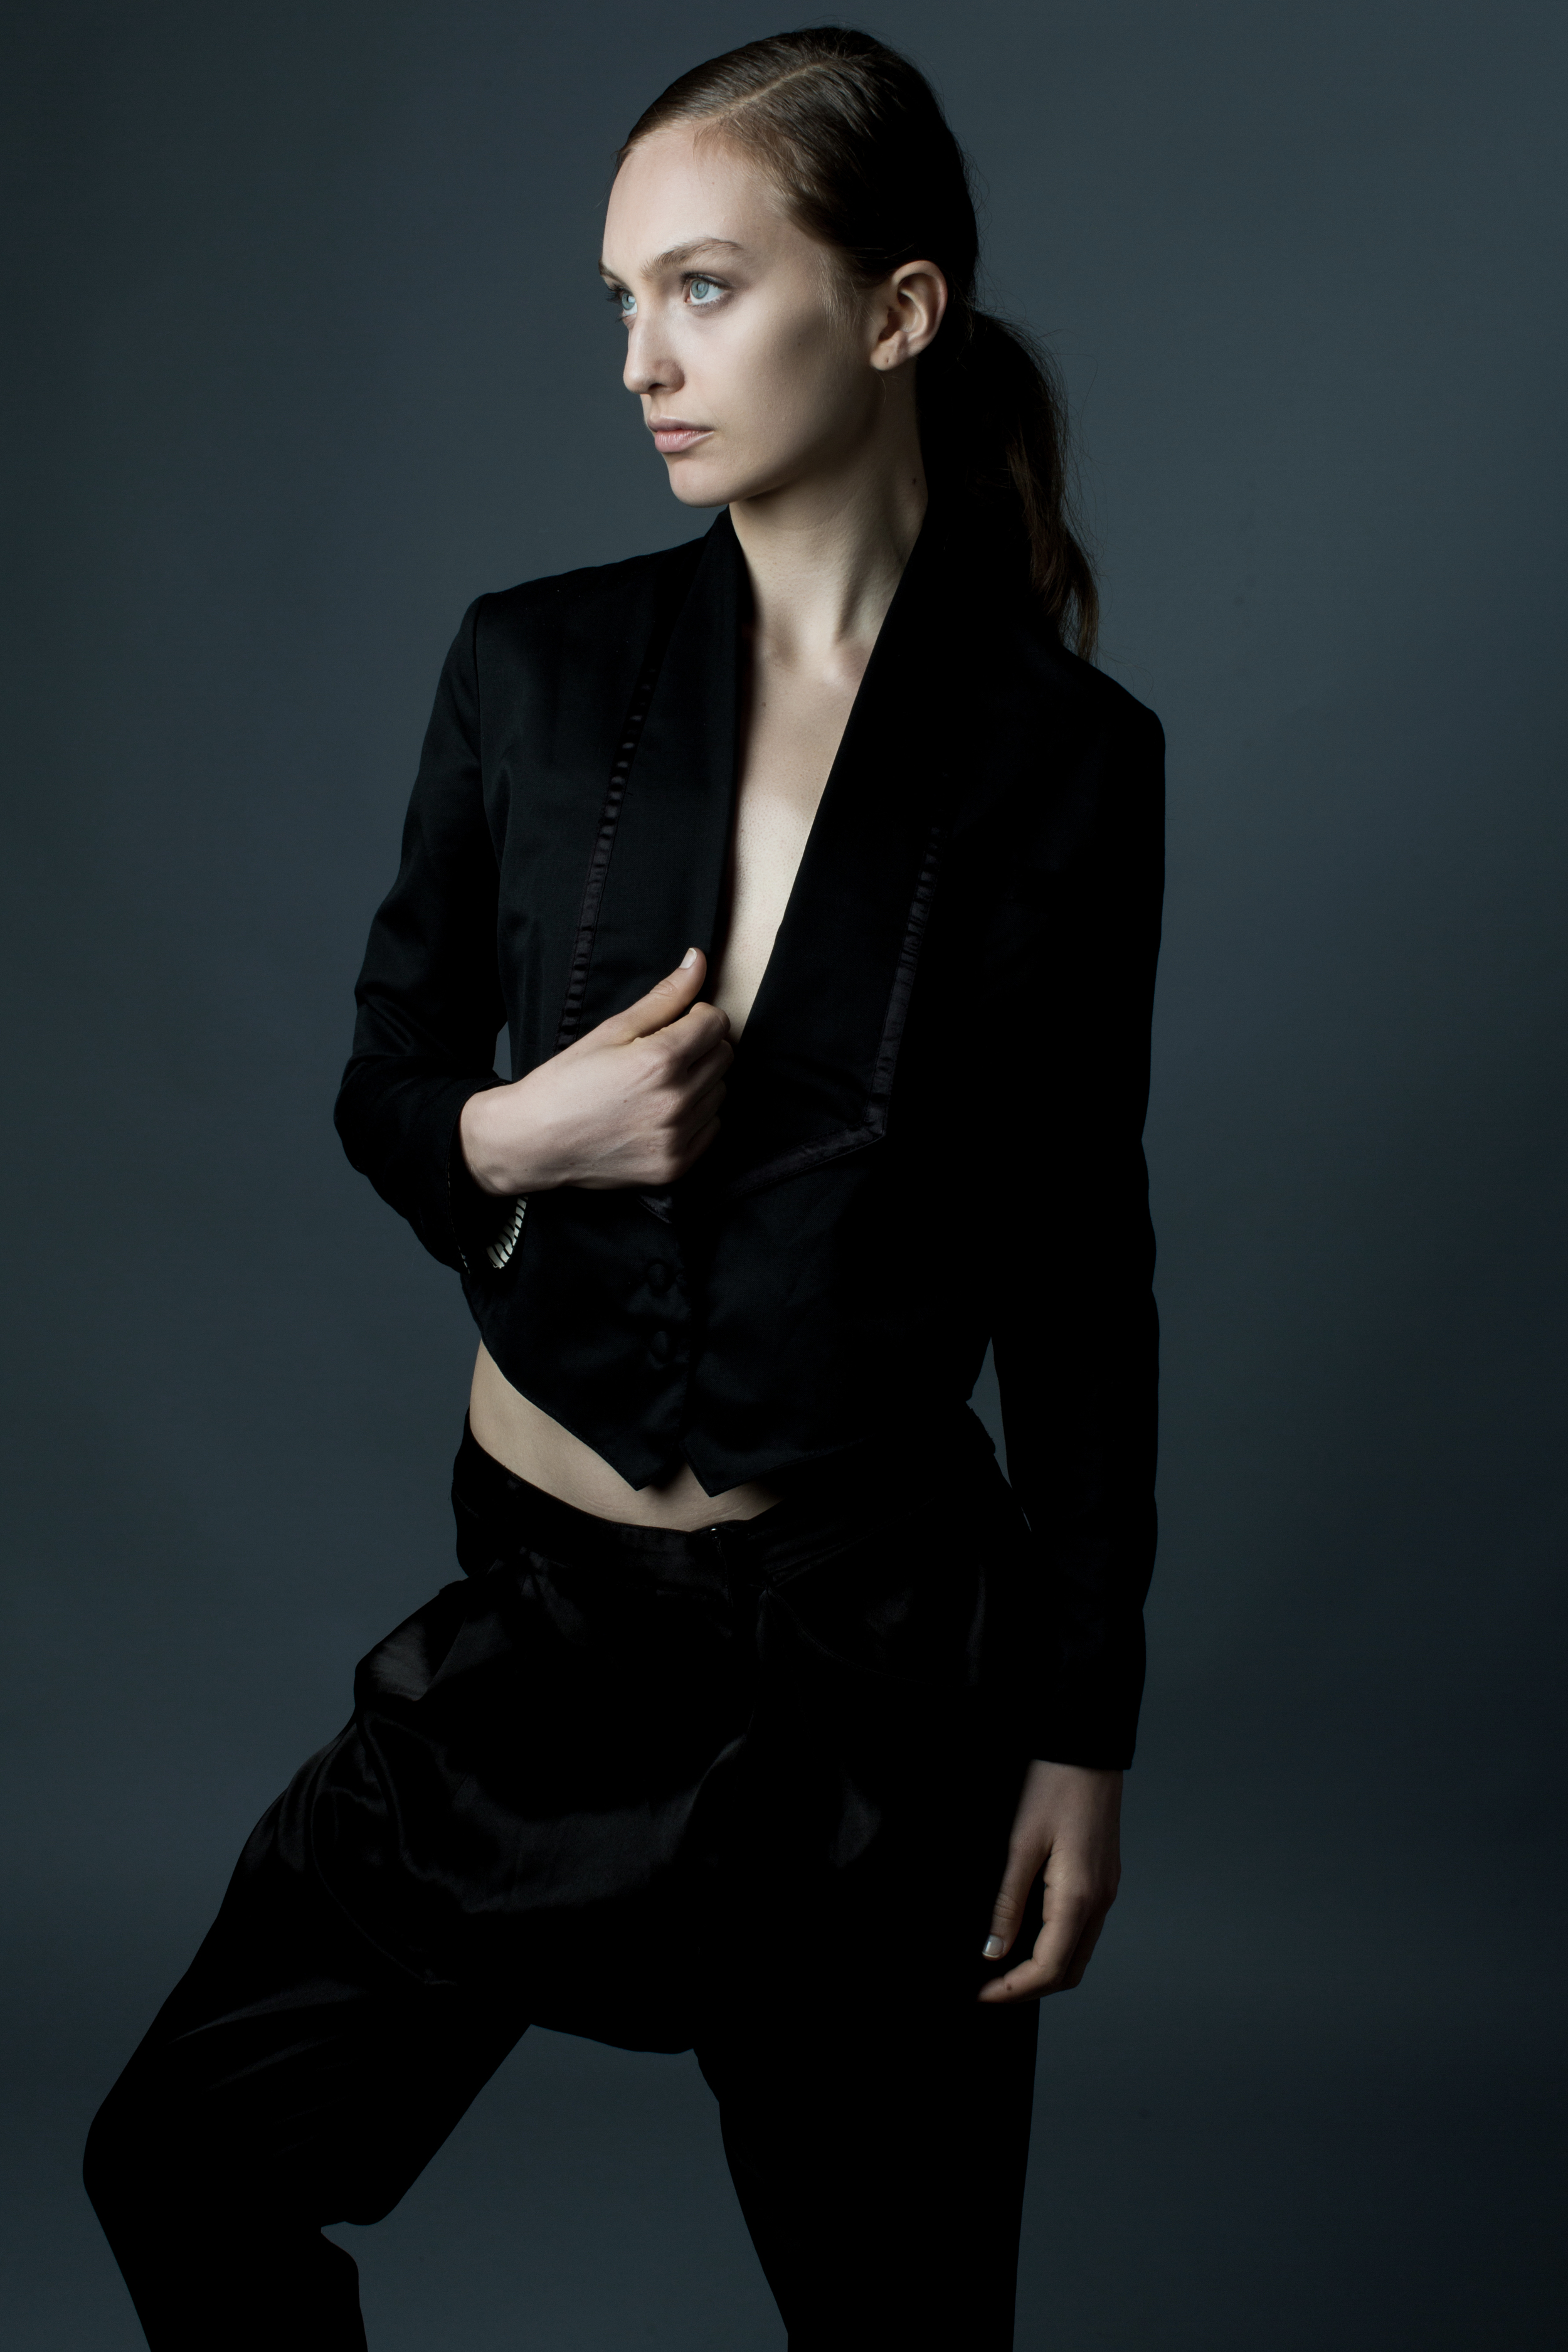 model CRYSTAL   photographer BONNIE NICHOALDS   featured designer  JAW MAKER   styled by NIK